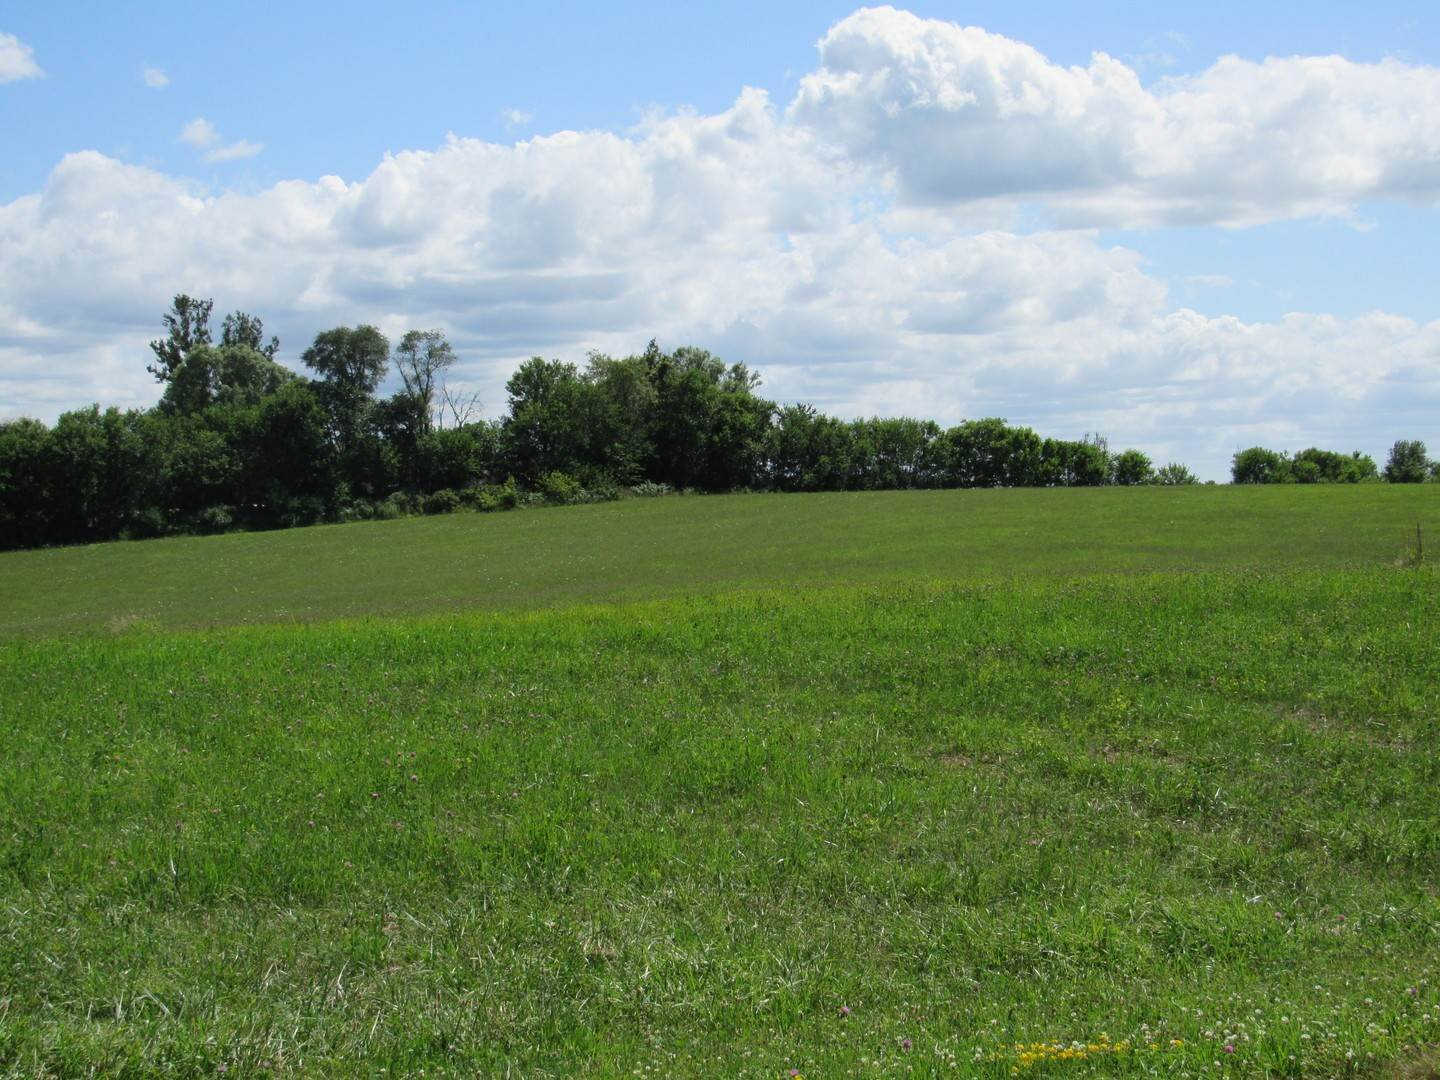 Land for Sale at Lot 9 Foxwood Drive Mount Carroll, Illinois 61053 United States